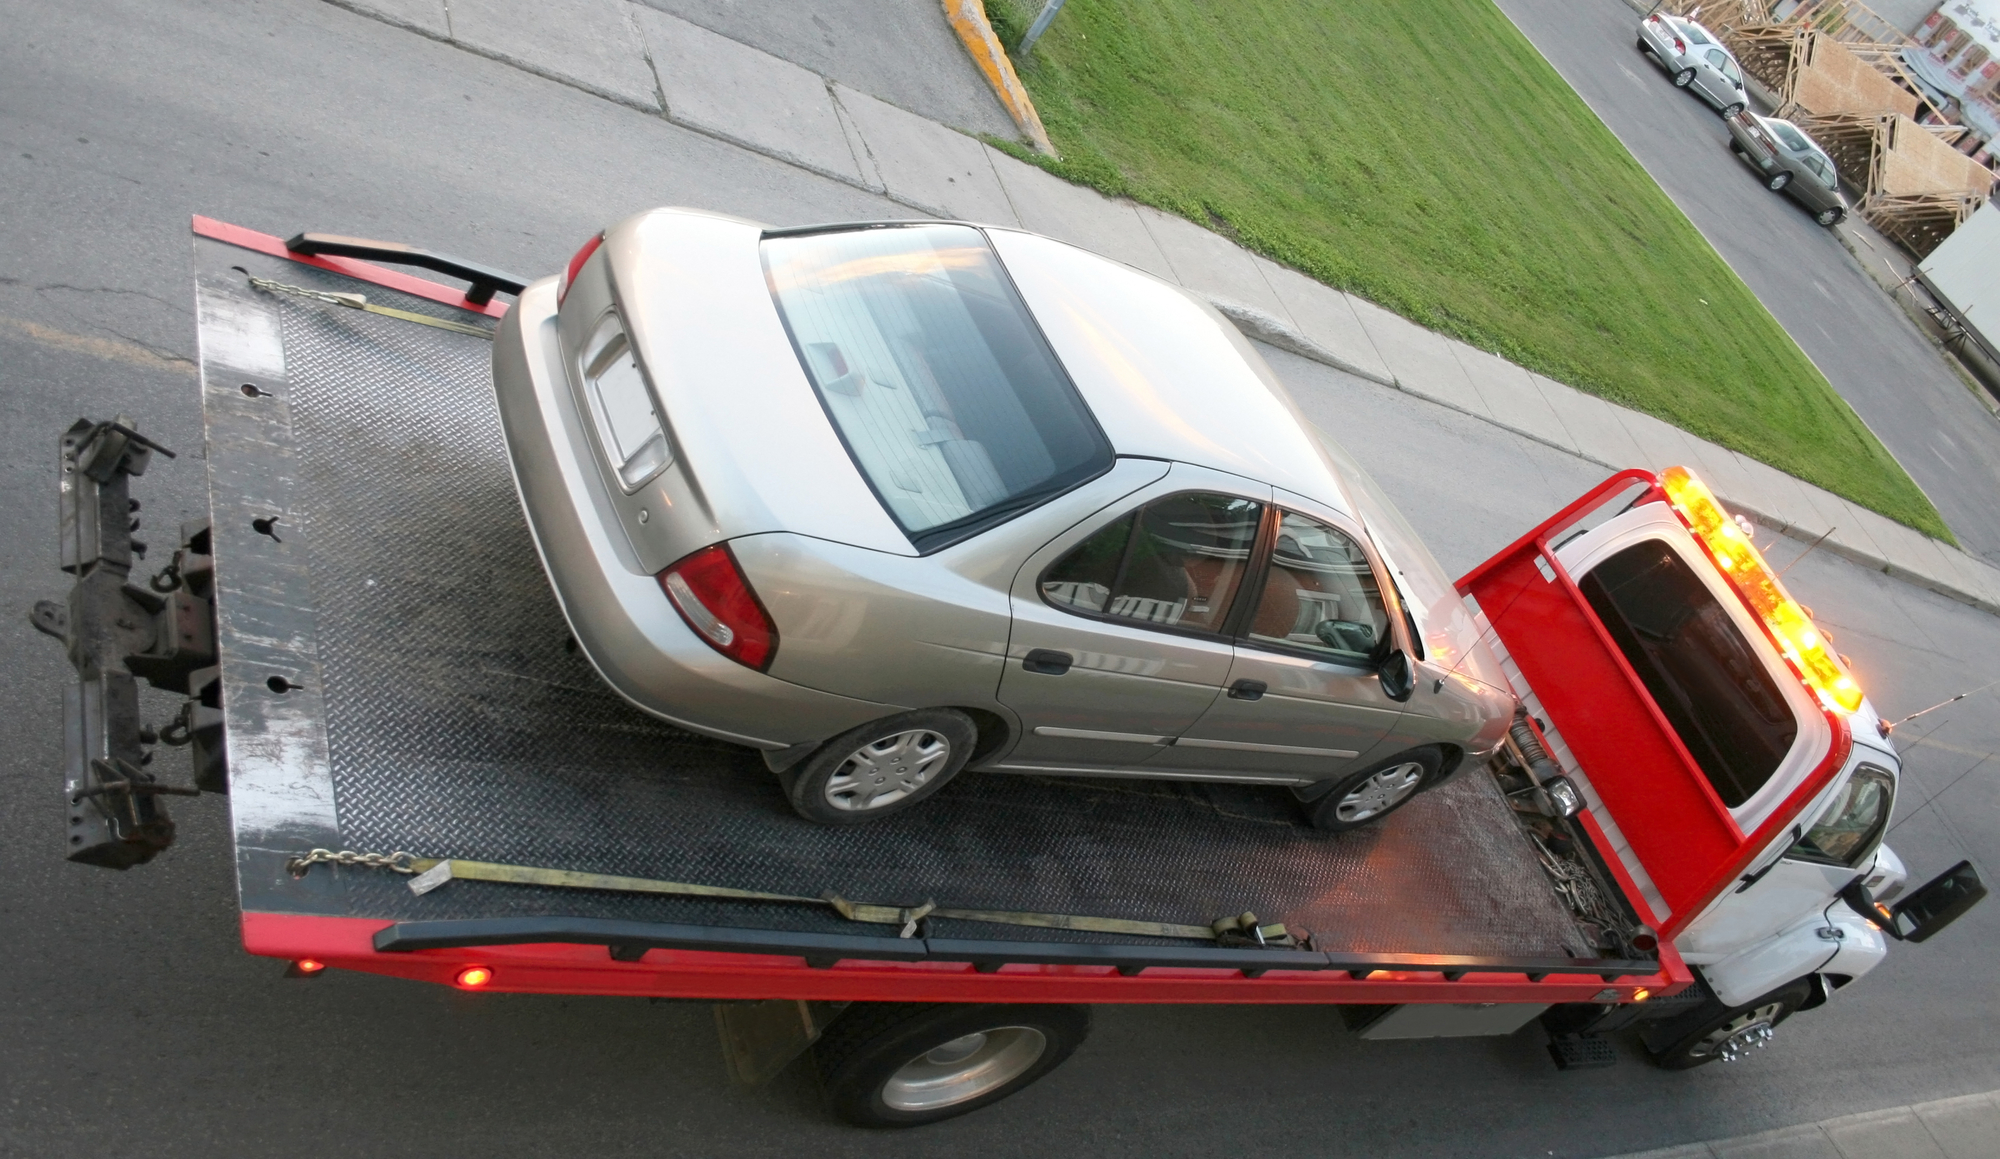 A car being hauled on a flatbed truck